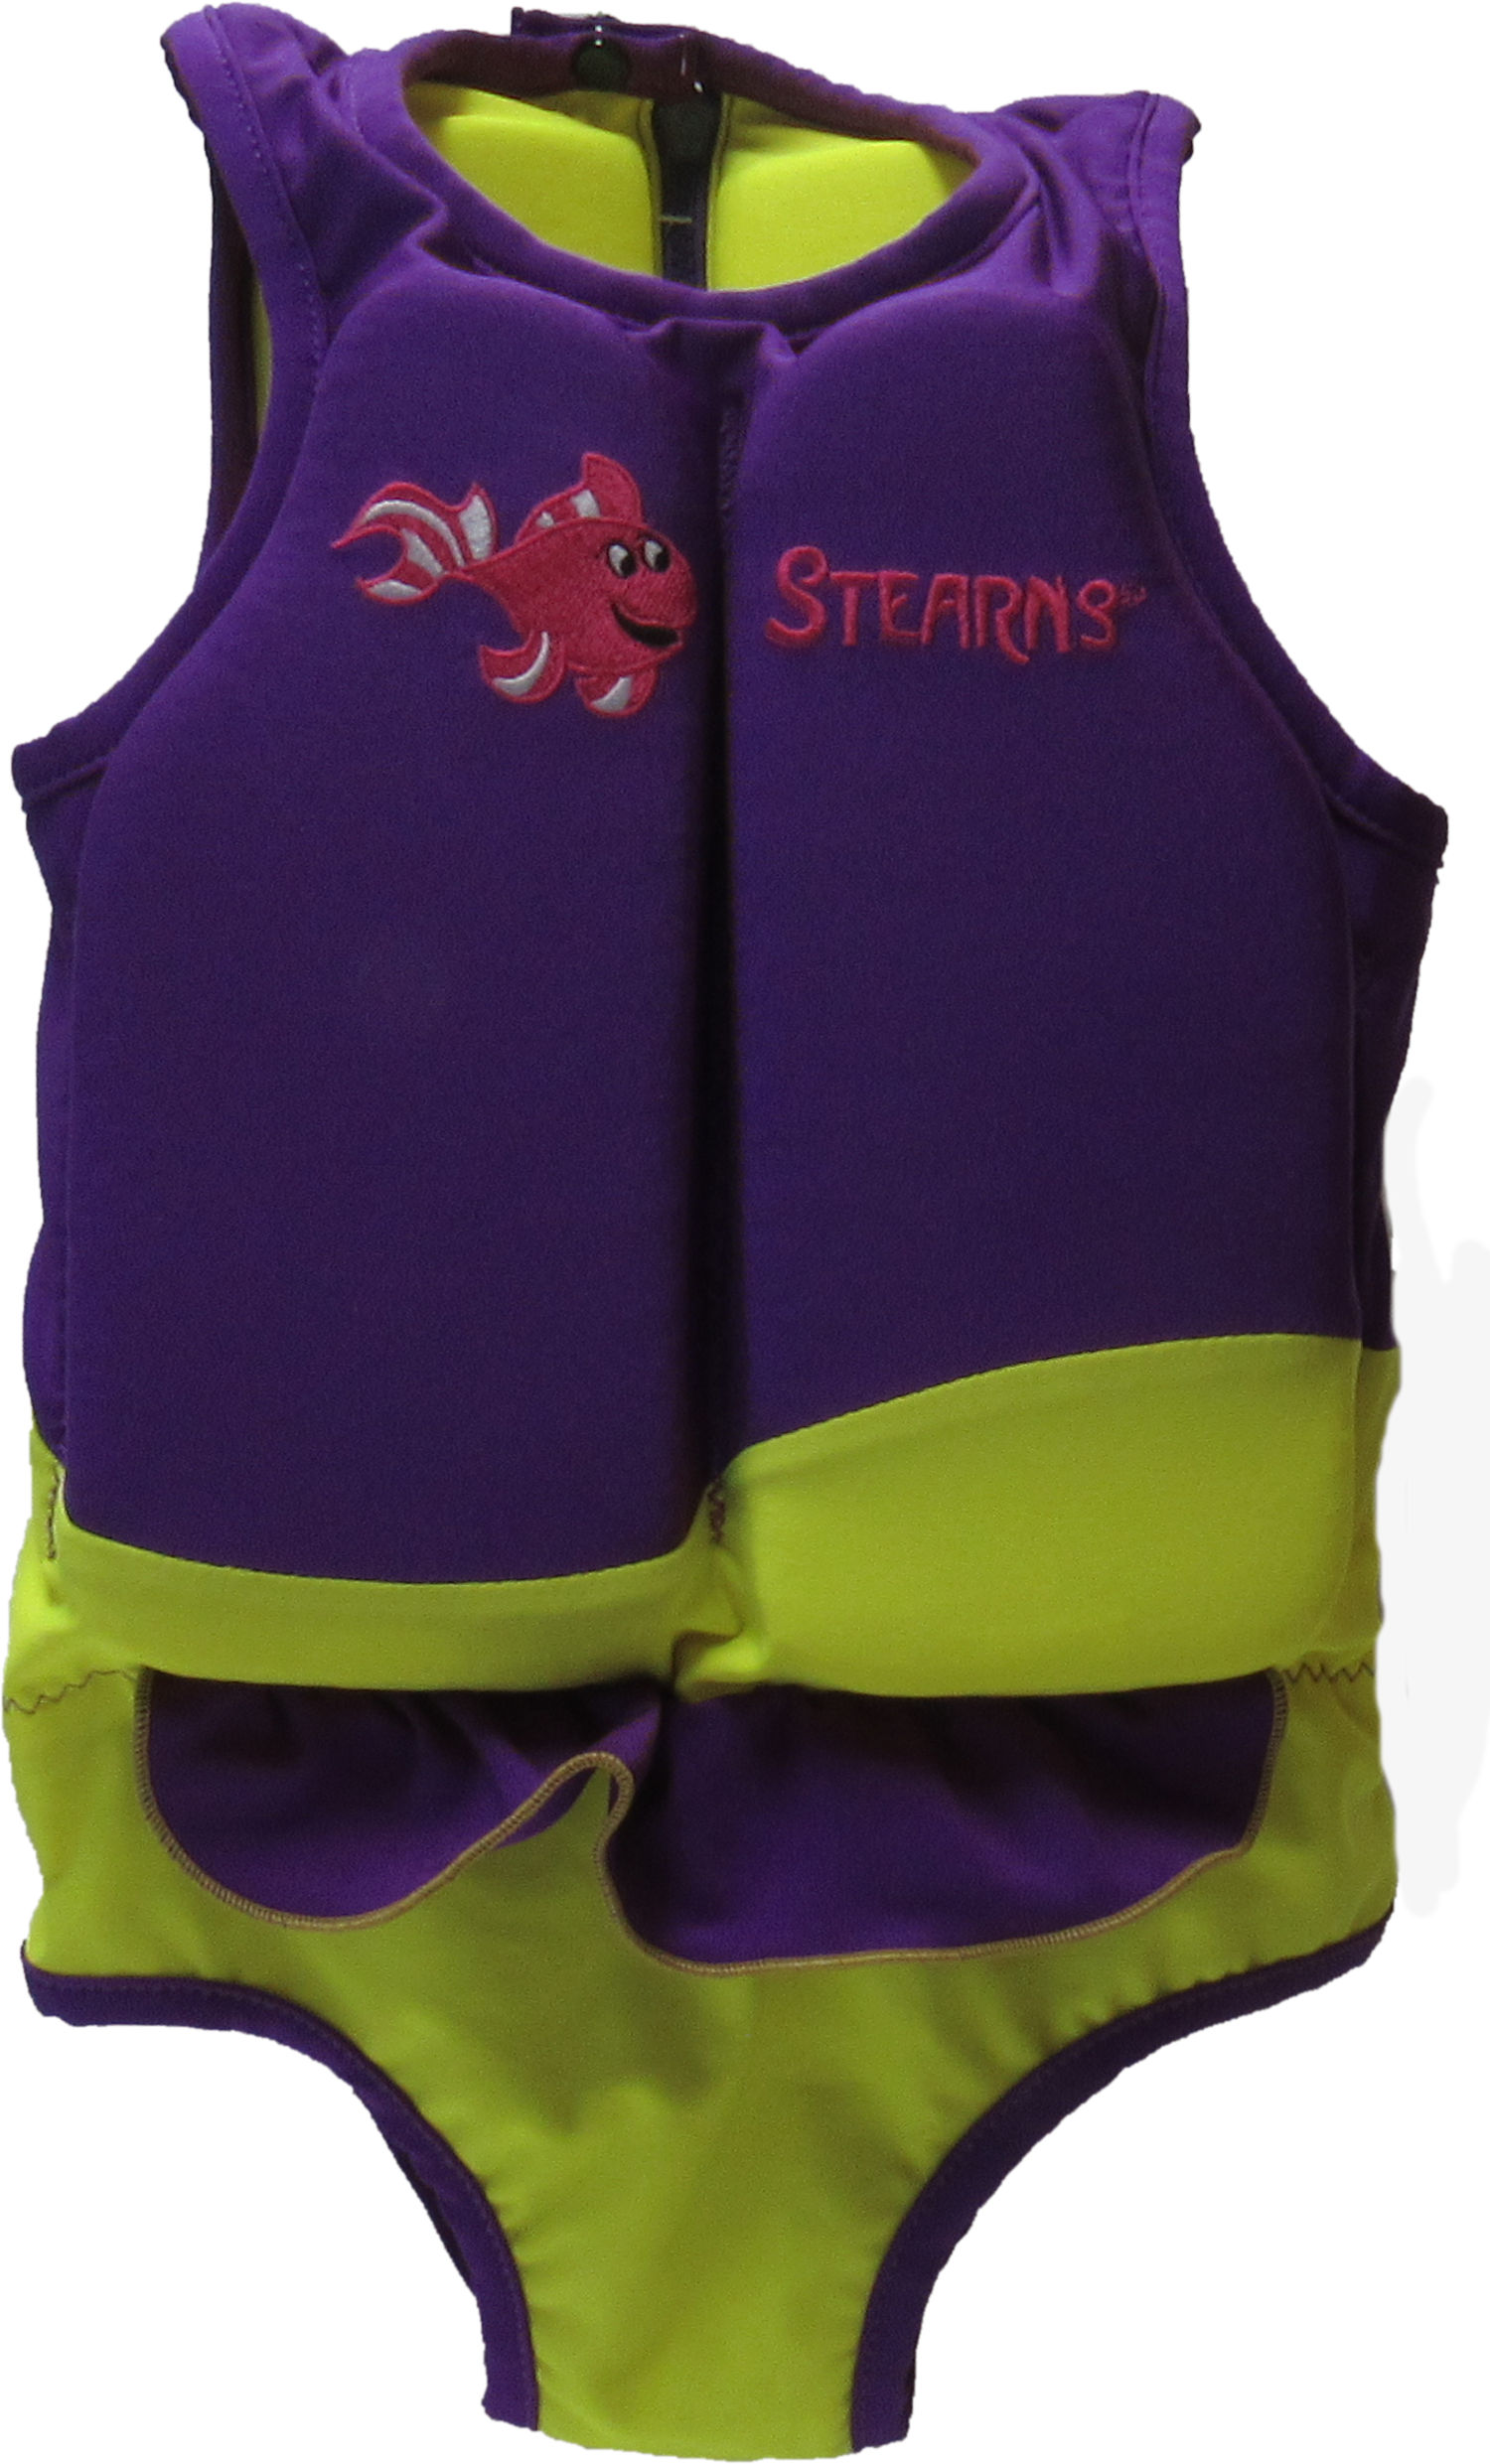 Stearns Children's Swim 'N Float 2 in 1 Swimsuit and ...